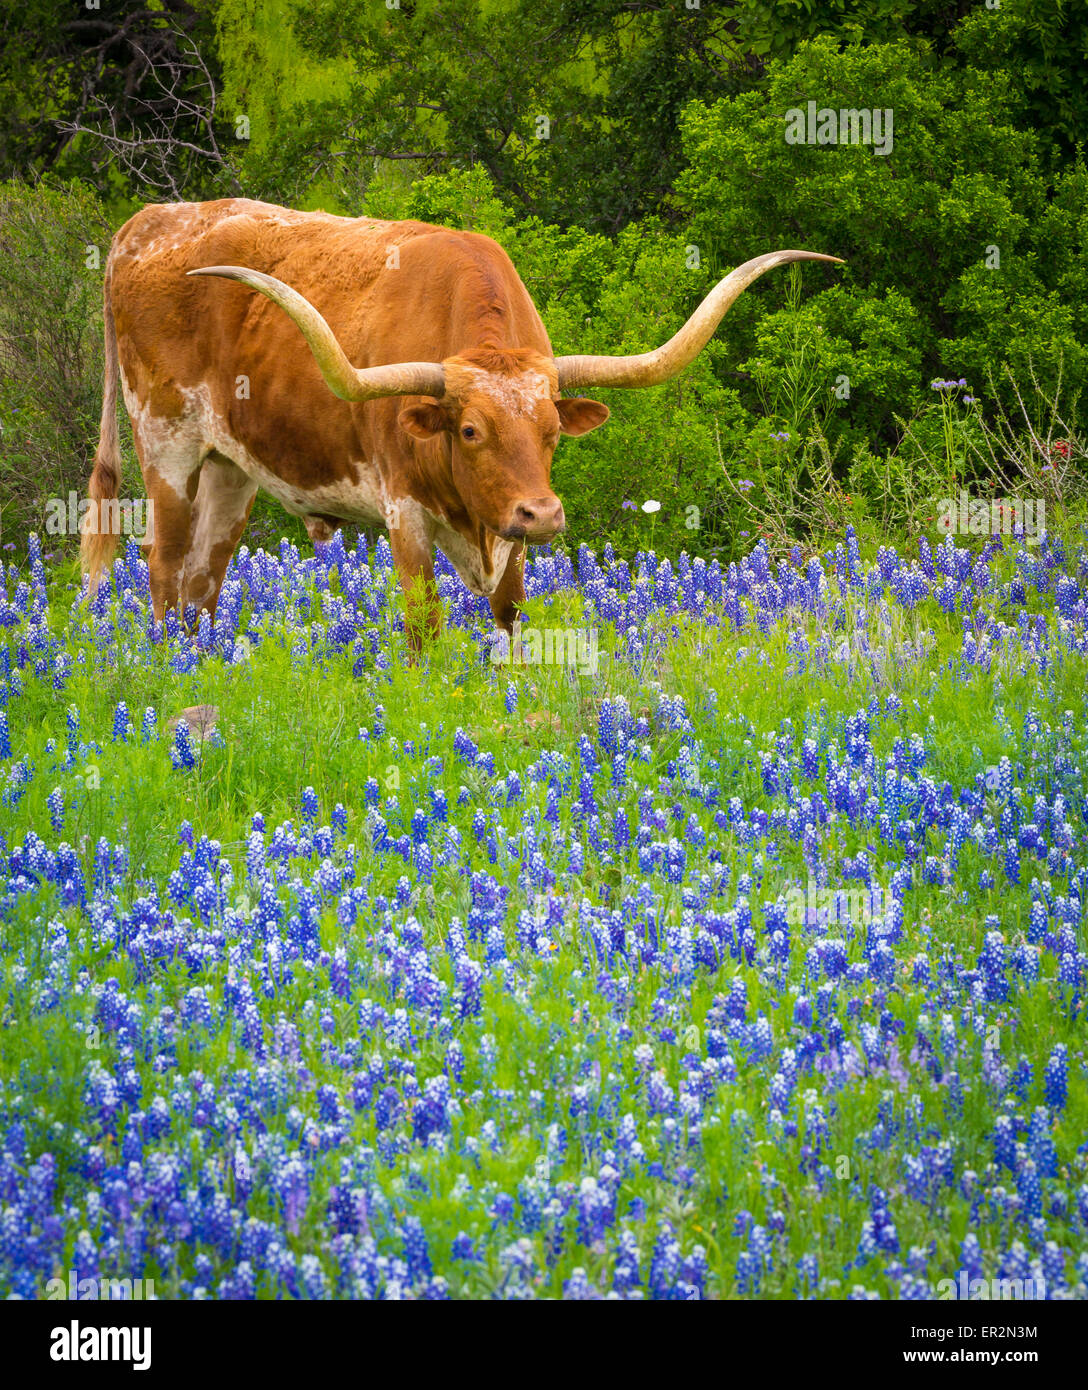 Longhorn cattle among bluebonnets in the Texas Hill Country Stock Photo